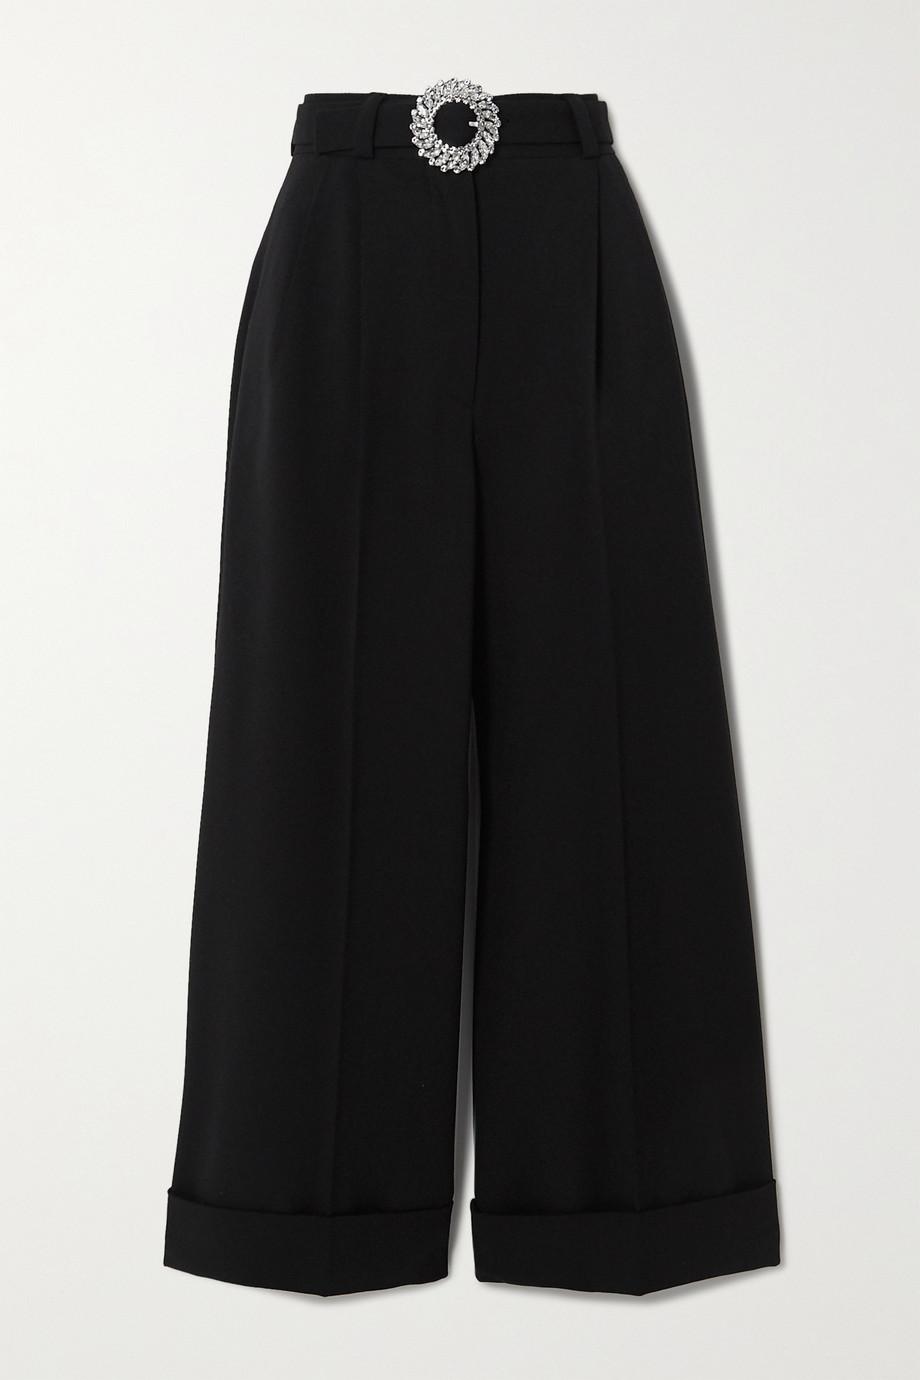 Miu Miu Crystal-embellished belted wool-blend wide-leg pants